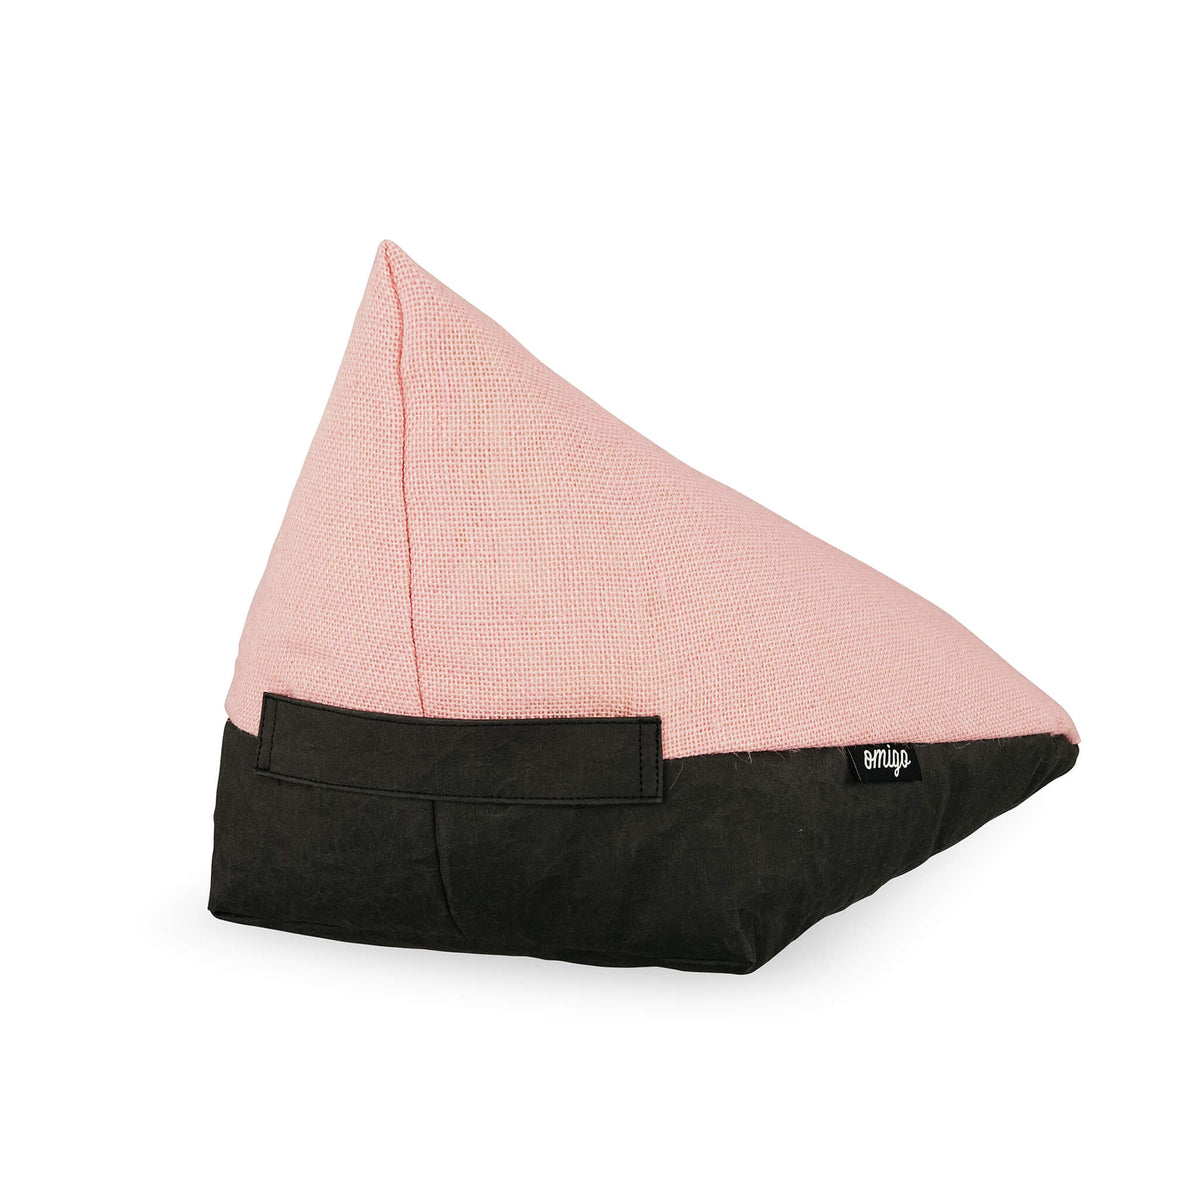 floor cushion with black vegan leather base and pink hemp top